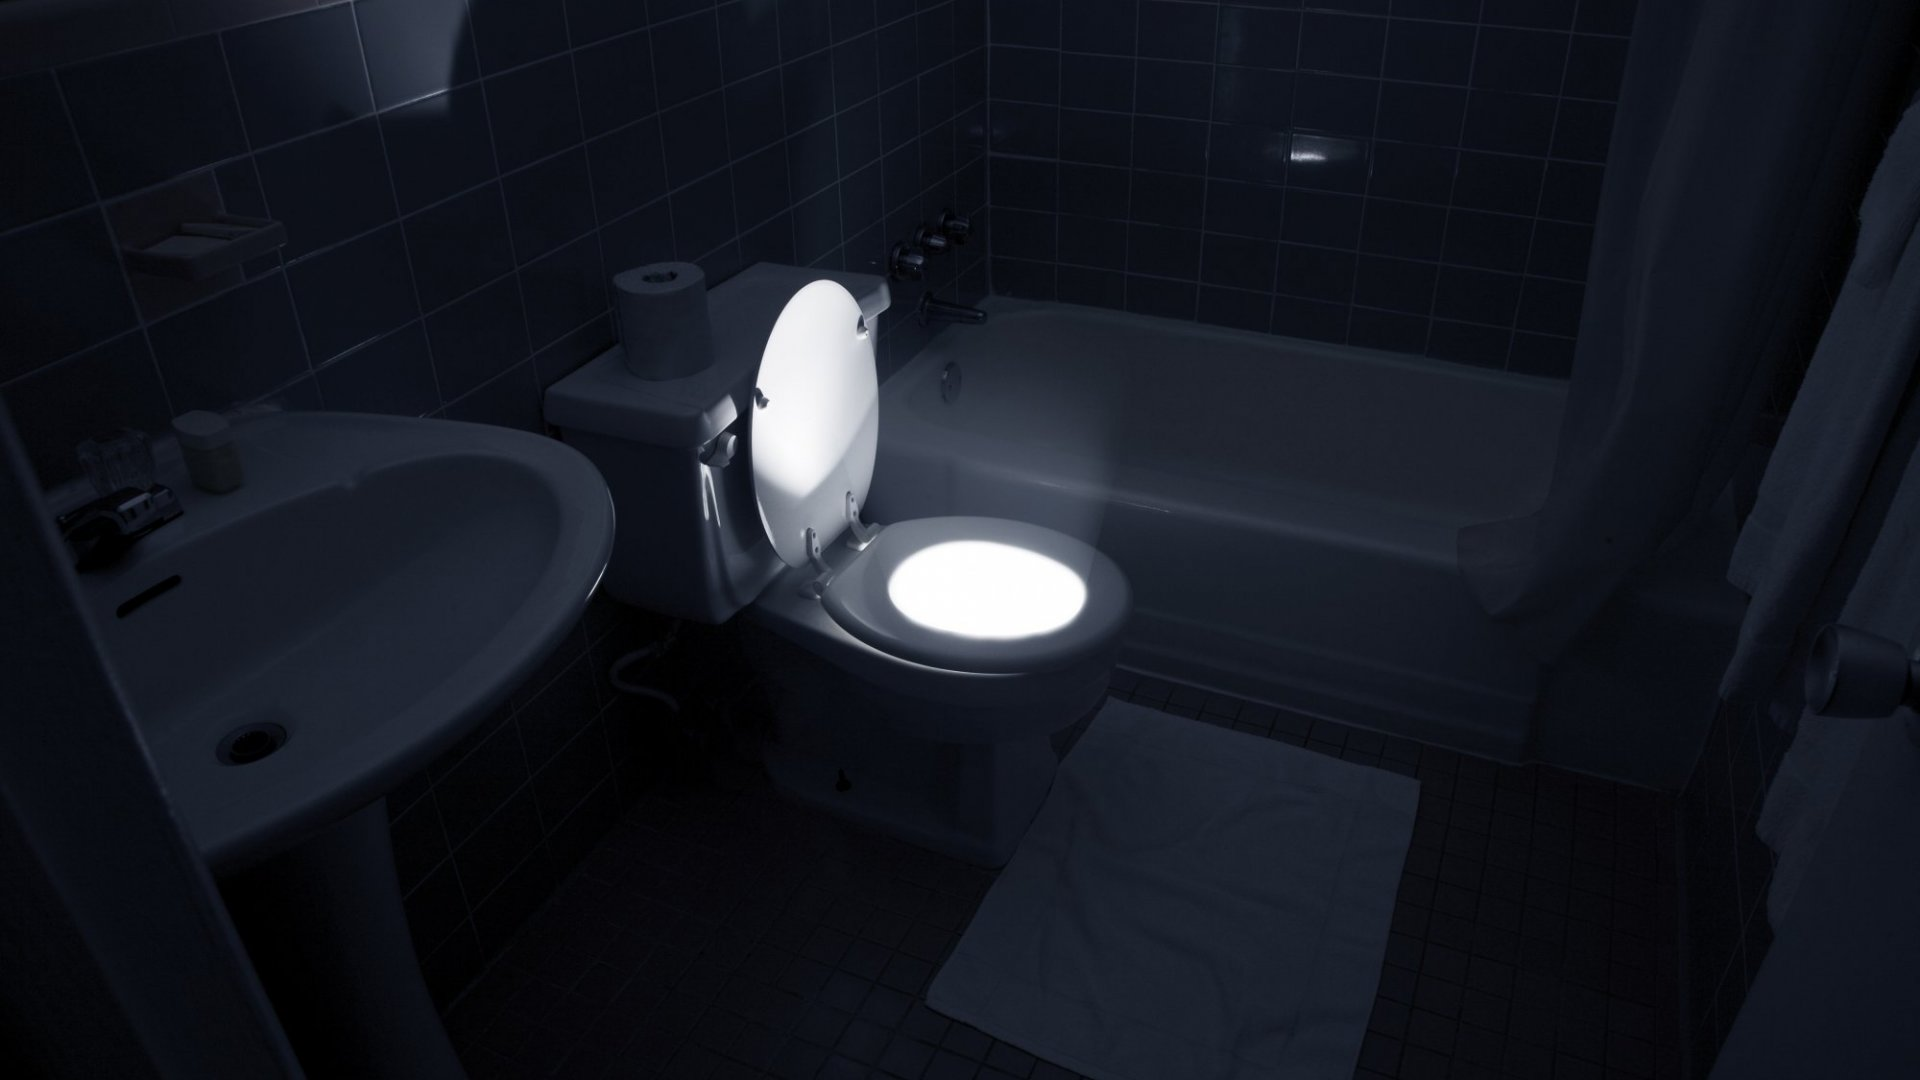 The Toilet of the Future Is Weird and Awesome